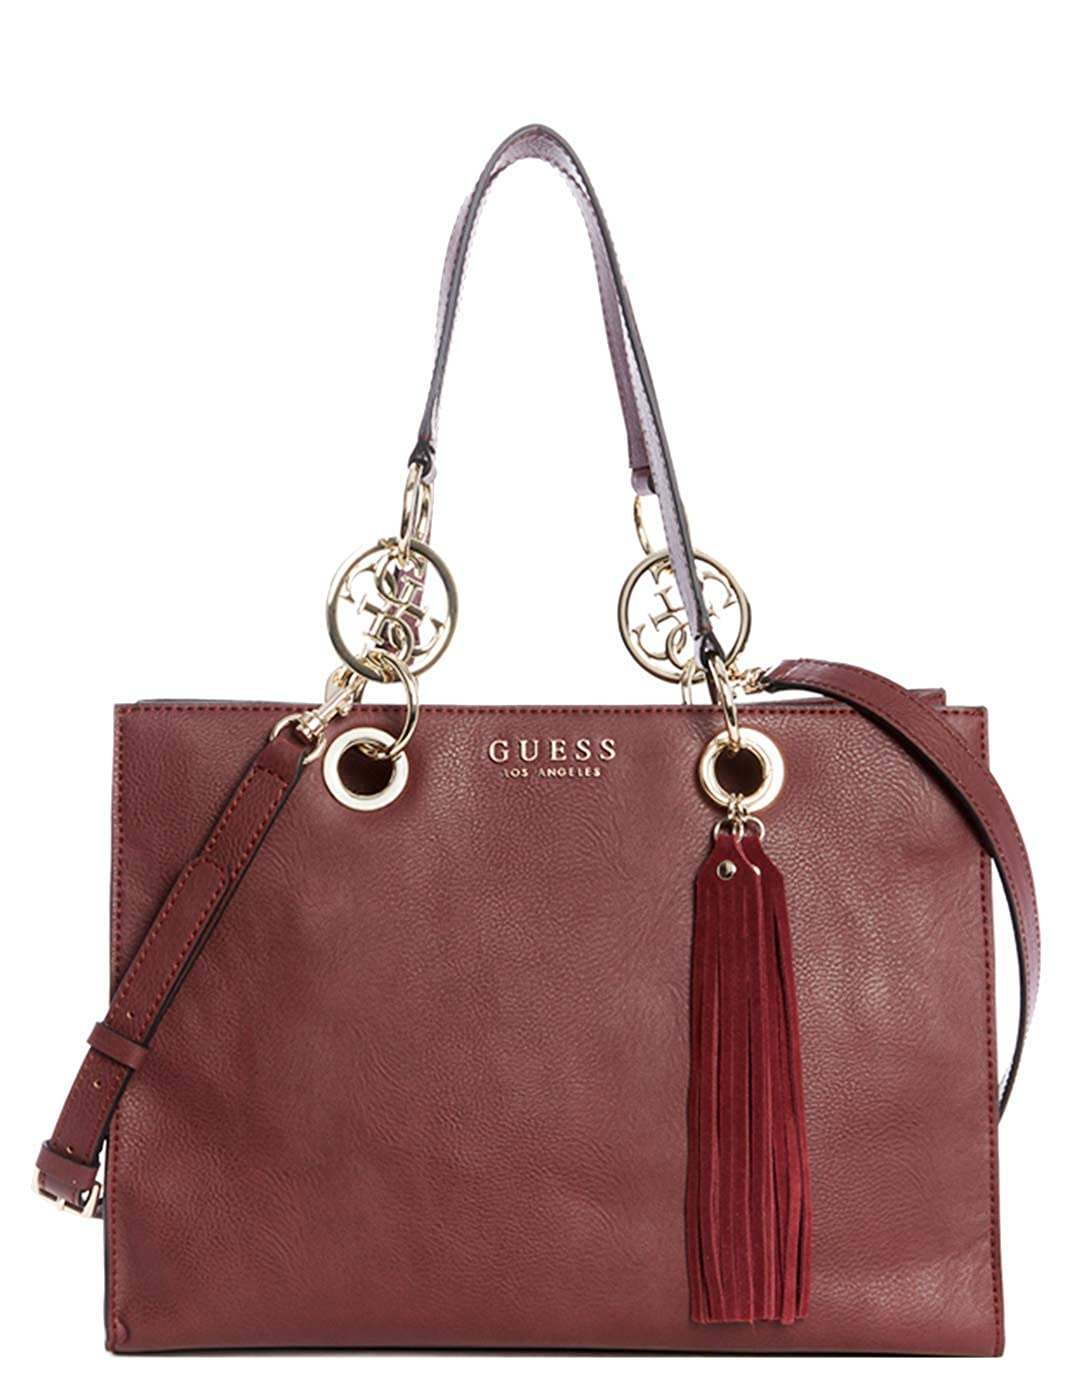 Guess burgundy bag ALANA GIRLFRIEND (One Size Mauve